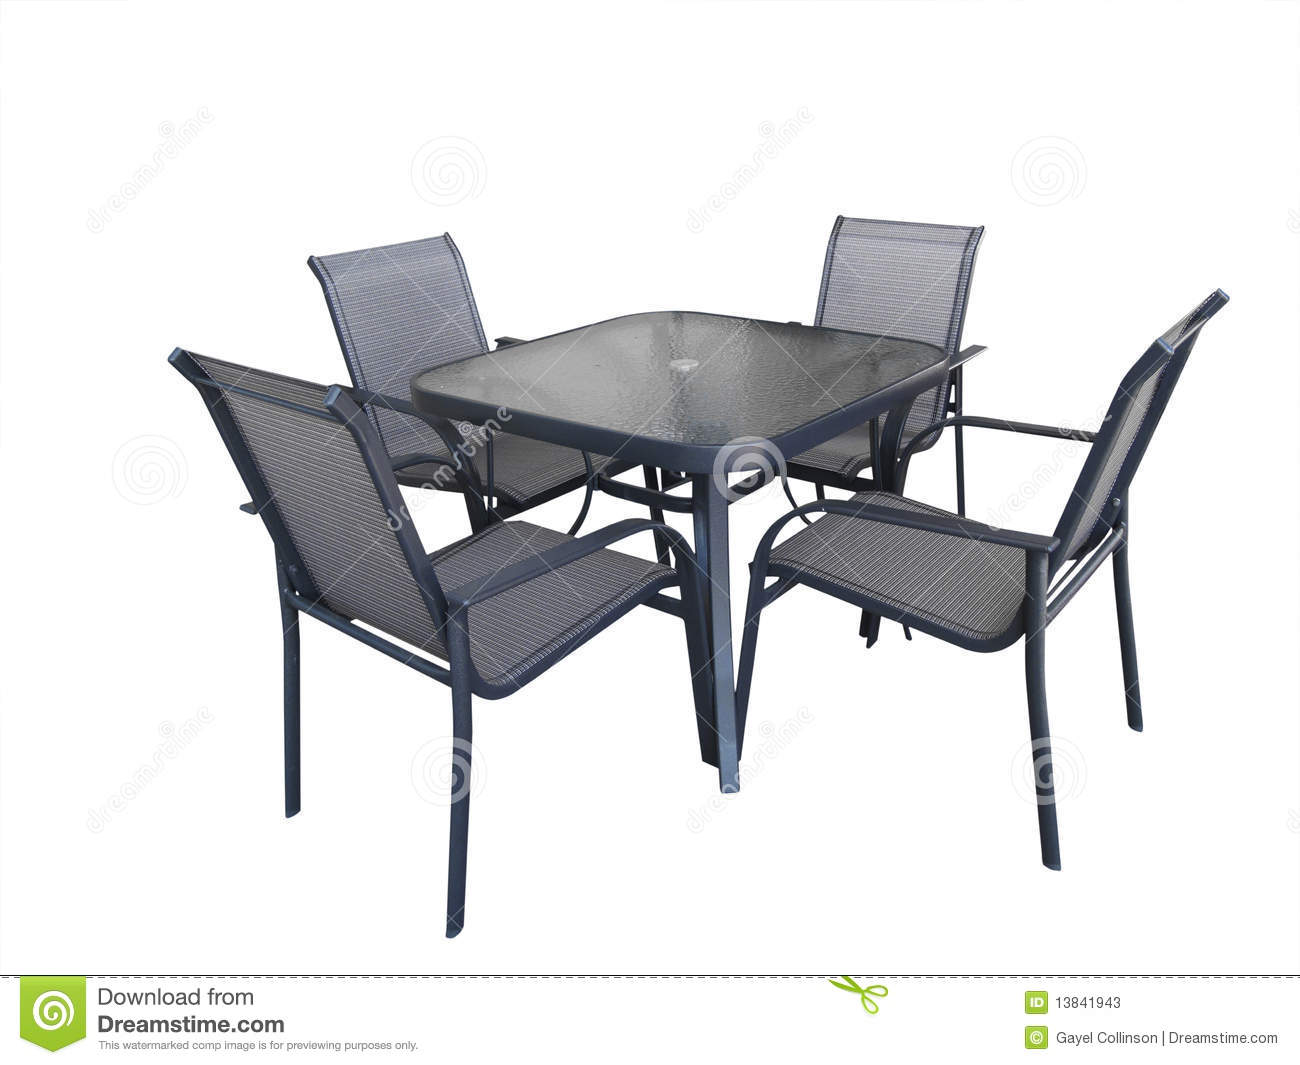 Outdoor glass table and chairs stock photos image 13841943 for Garden table and chairs